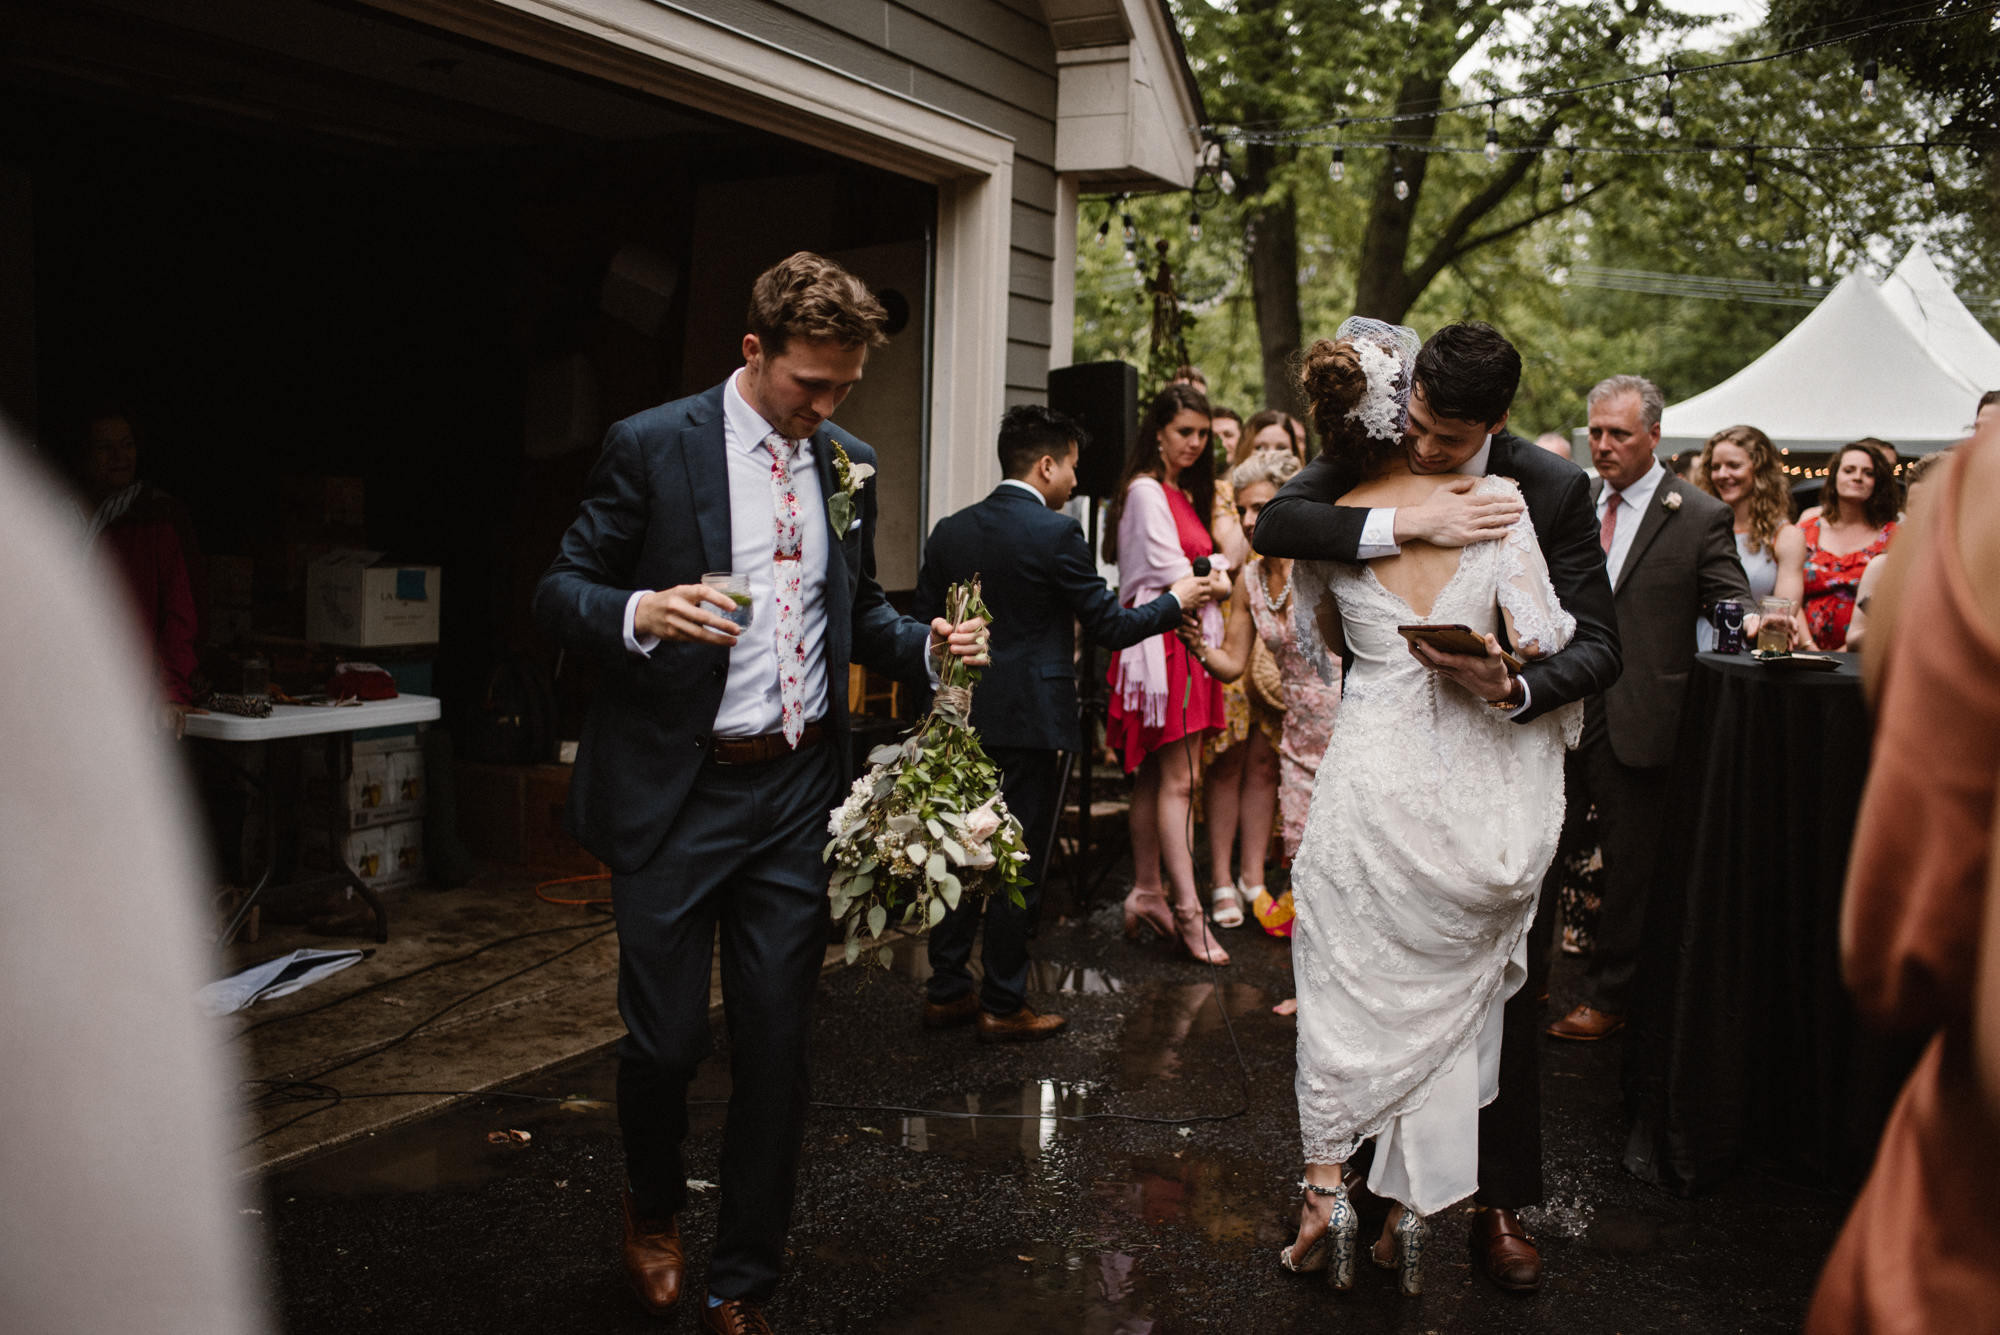 Mairi and Jude - Rainy Backyard Wedding - Intimate Wedding - Fun Reception Photos - Chicago Wedding Photographer - Catholic Wedding - White Sails Creative - Virginia Backyard Wedding Photographer_53.jpg